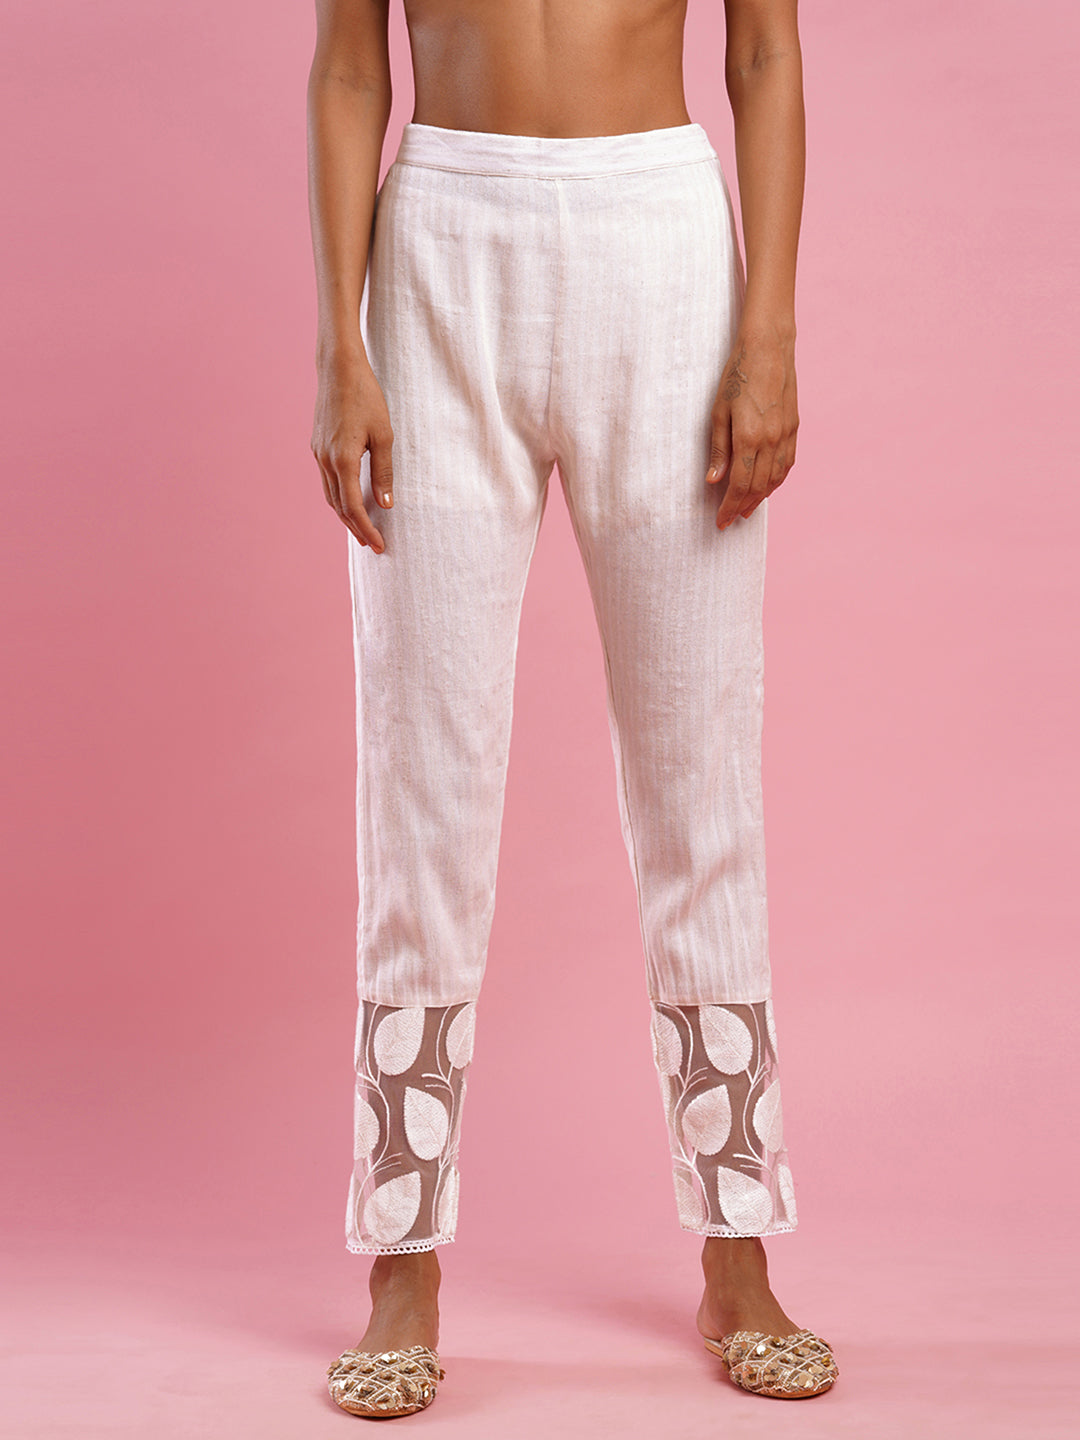 Woven Striped & Leaf Embroidered Ankle Pant - Off White